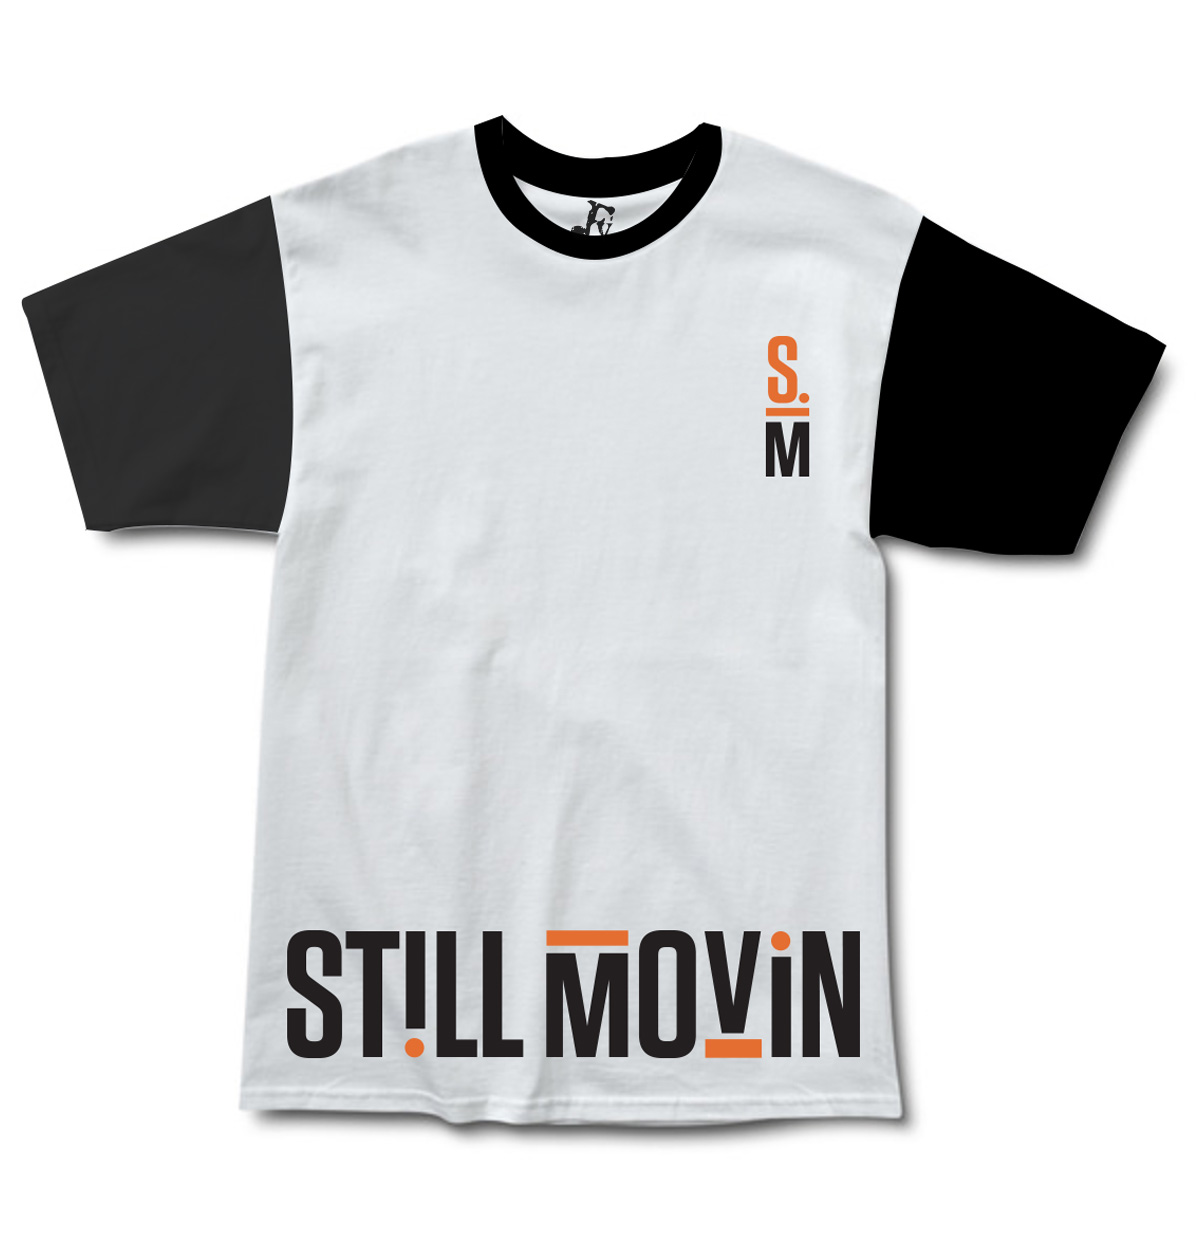 stillmovinorangemock